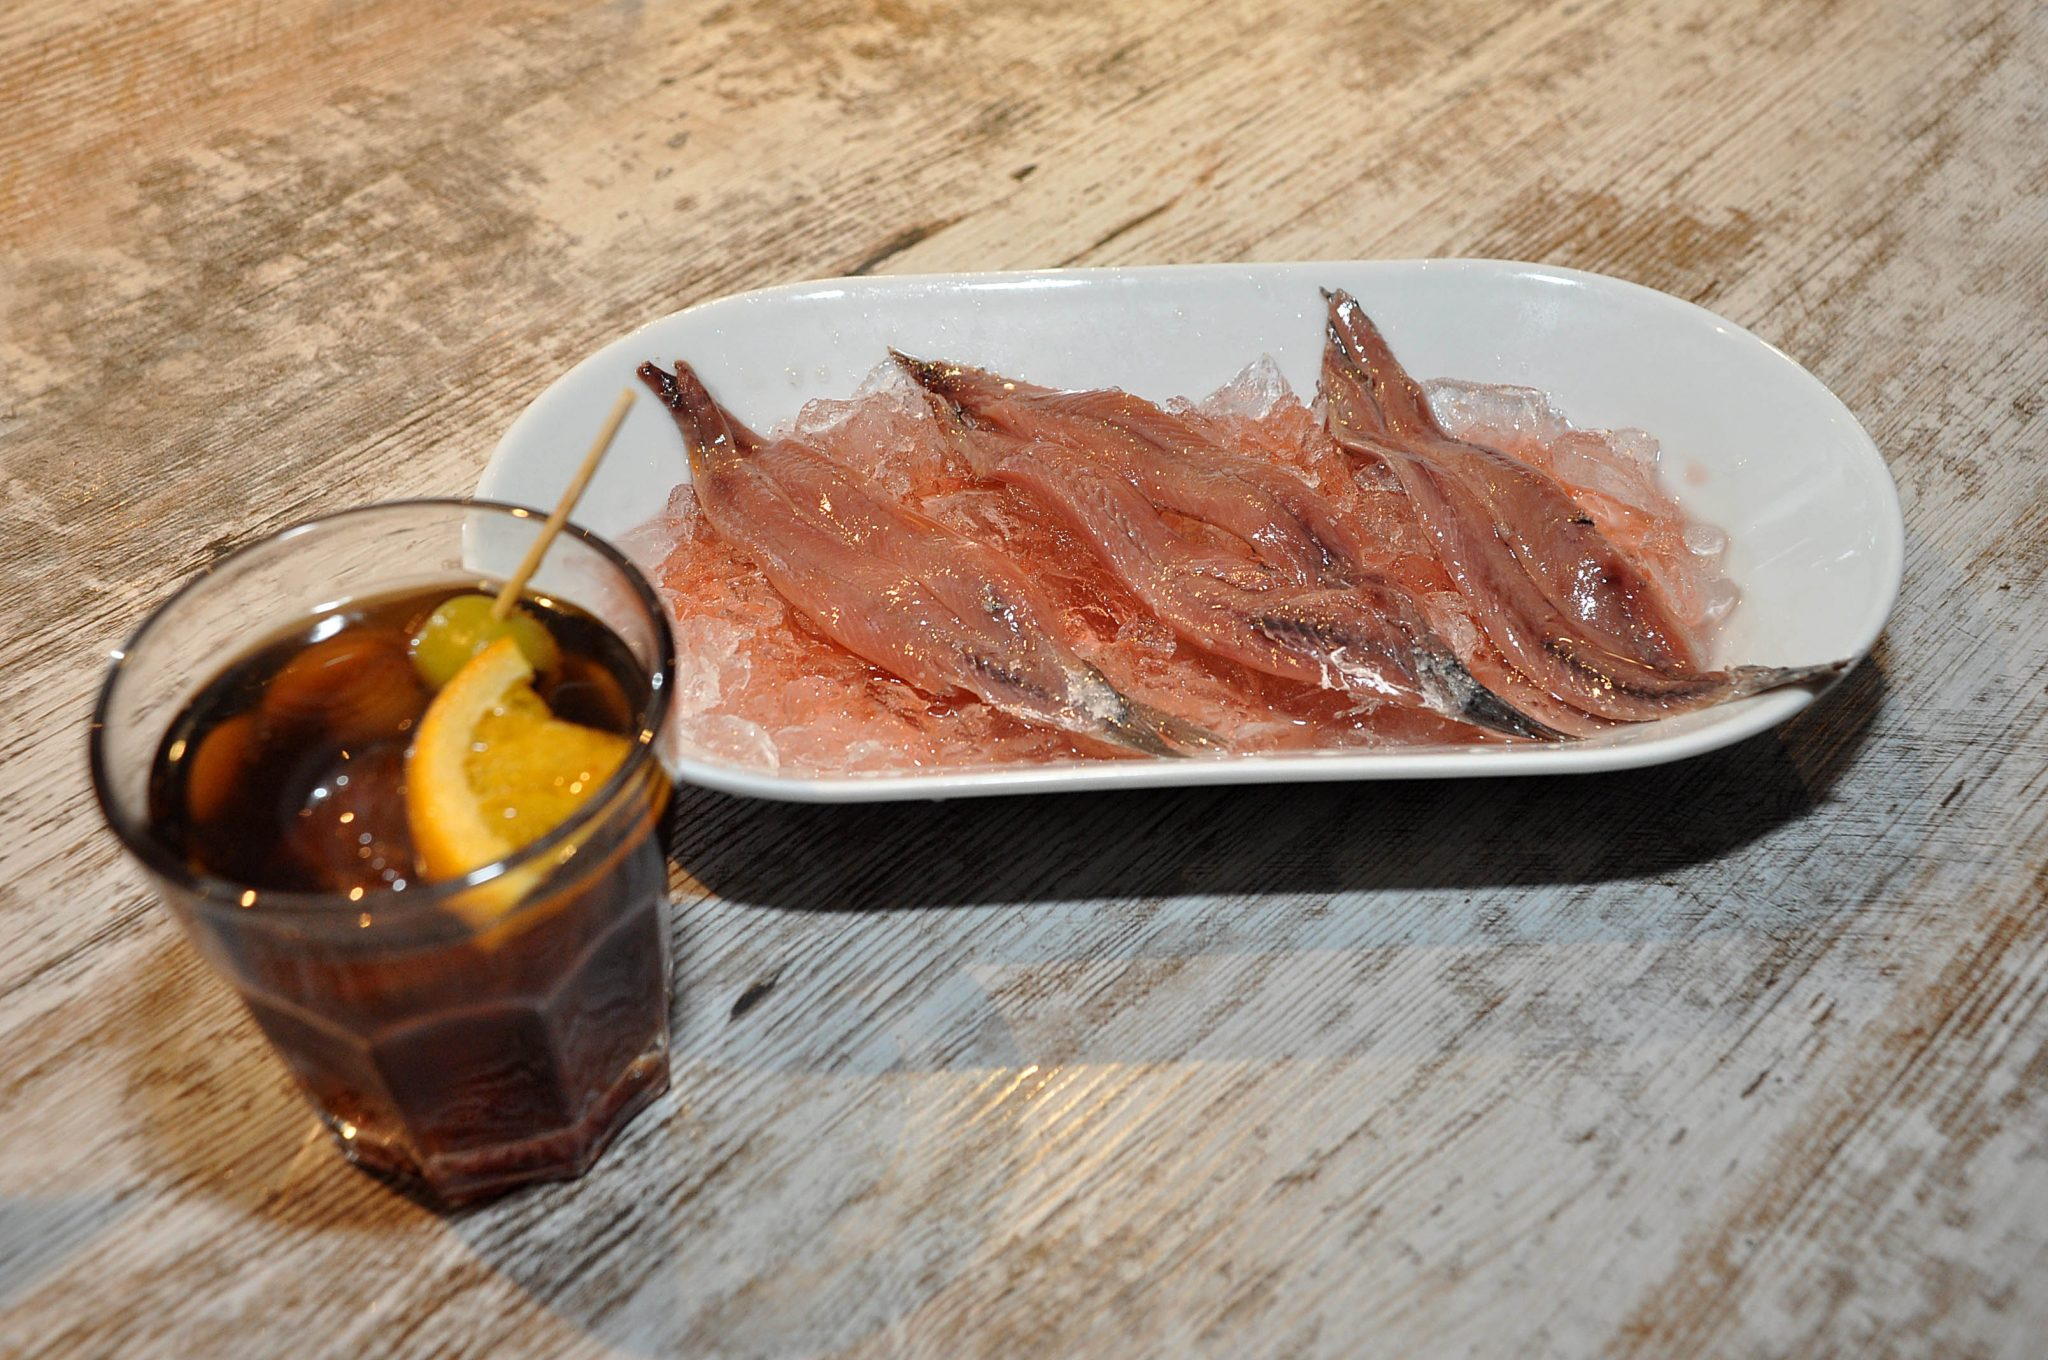 Anchoas salmuera y vermouth